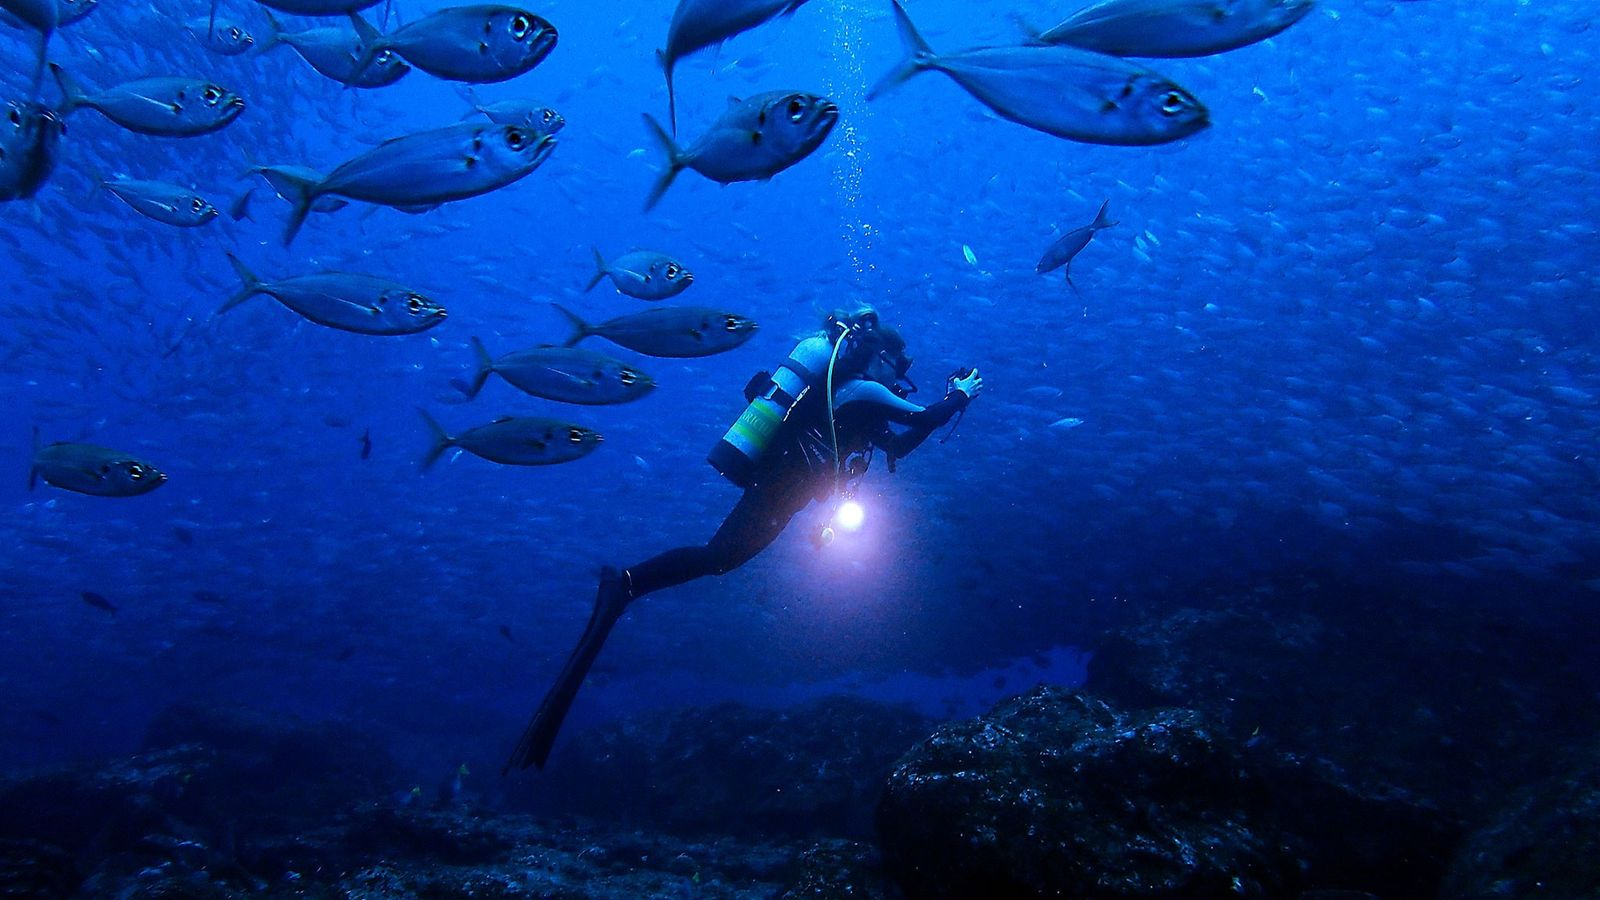 Marine biologist Jessica Cramp explores the waters of the Galapagos Islands.